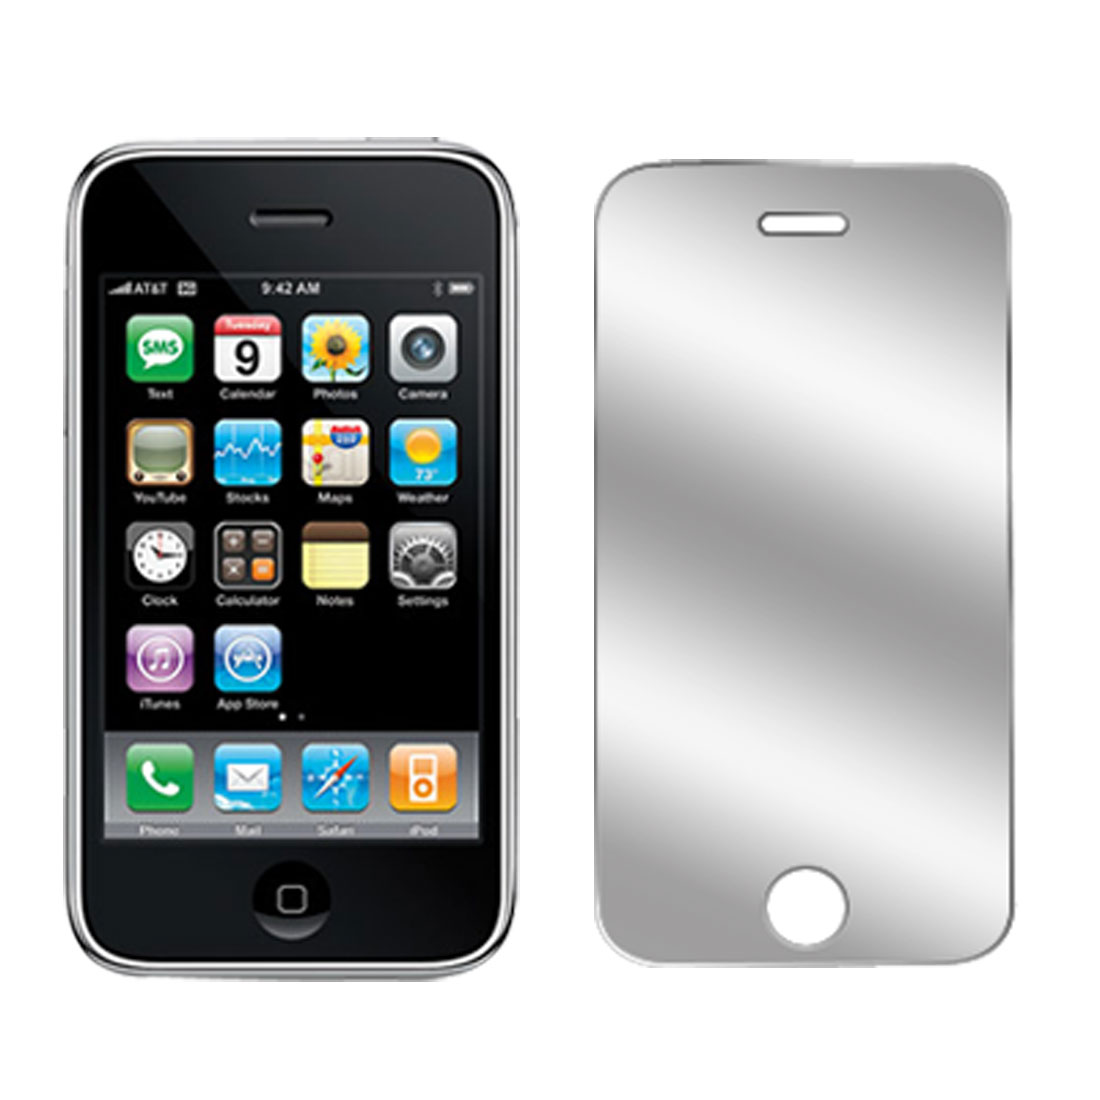 Unique Bargains Clear Replacement LCD Screen Guard Protector for Apple iPhone 3G